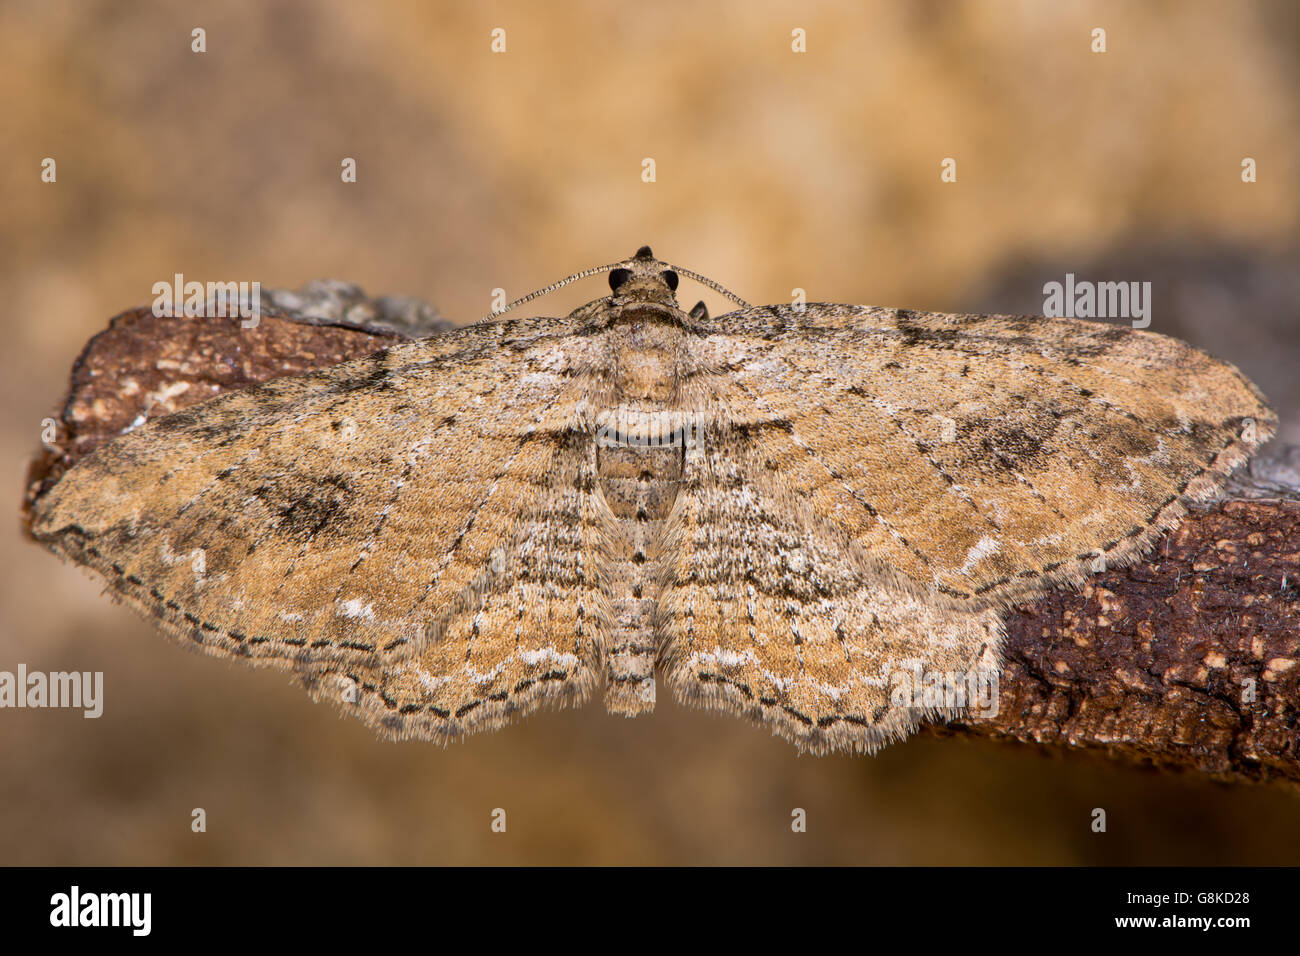 The fern moth (Horisme tersata). Insect in the family Geometridae, showing indistinct markings - Stock Image